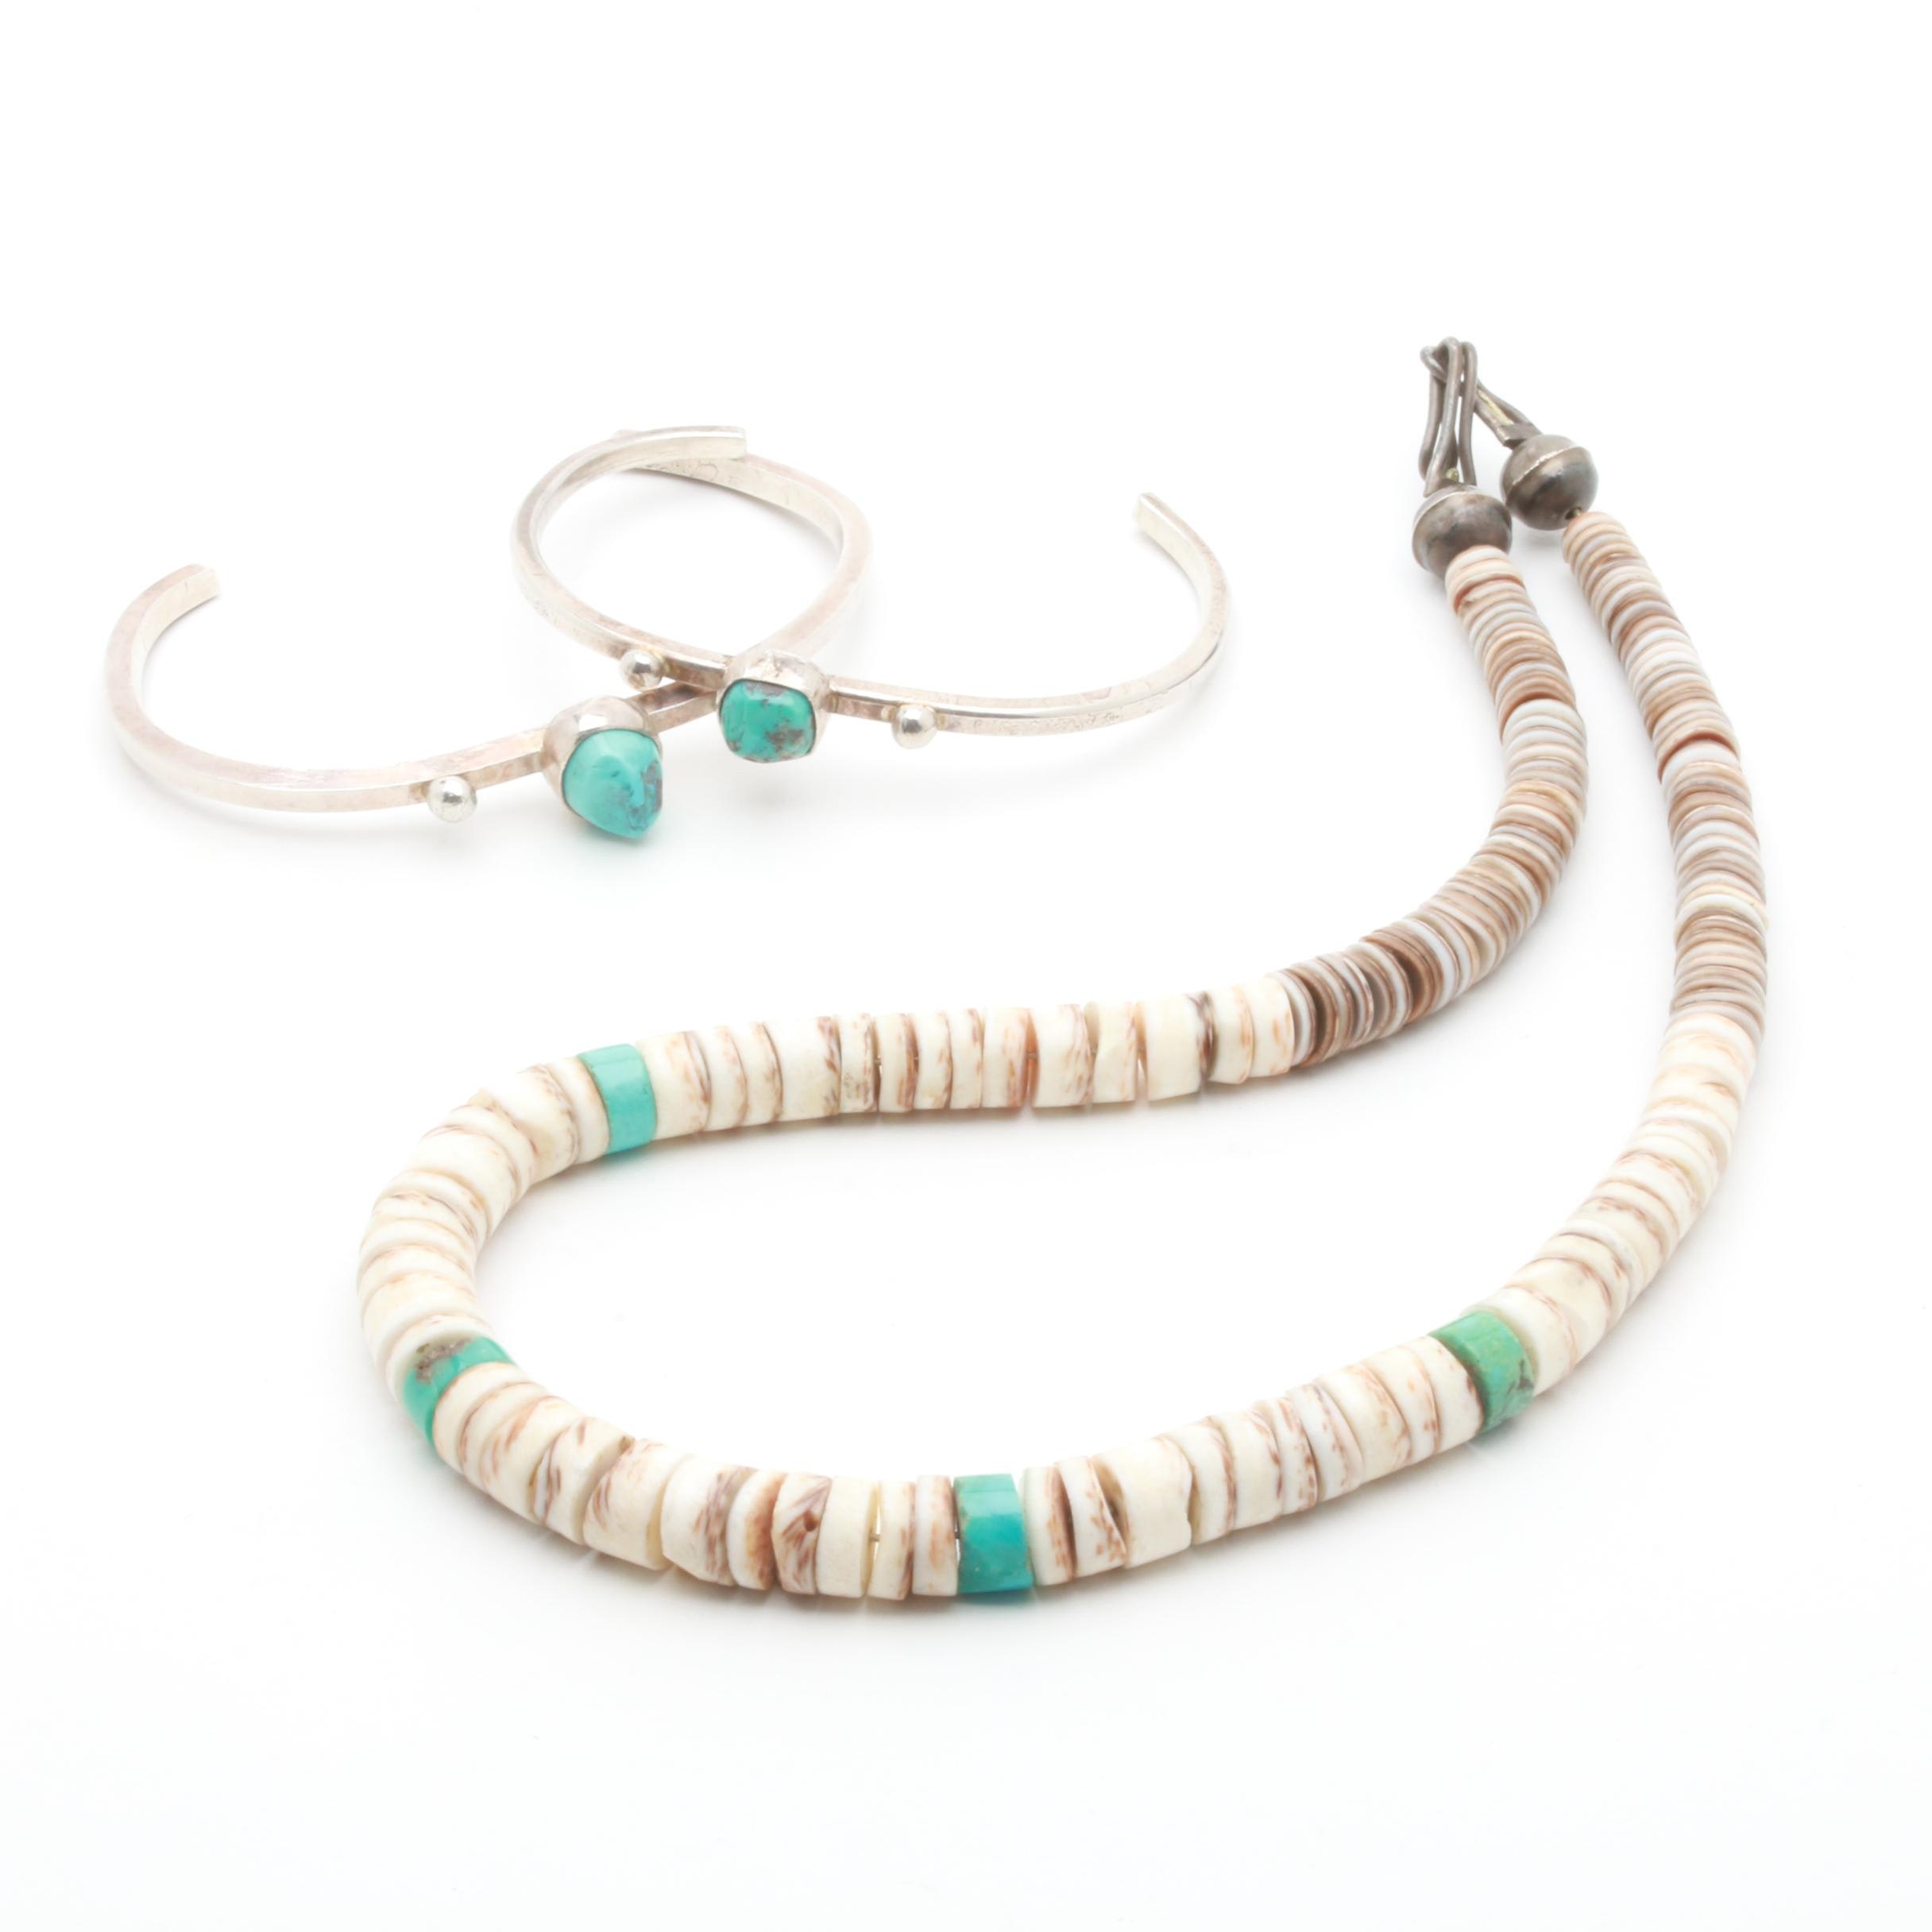 Sterling Silver Turquoise and Shell Jewelry Including Cuffs and a Necklace